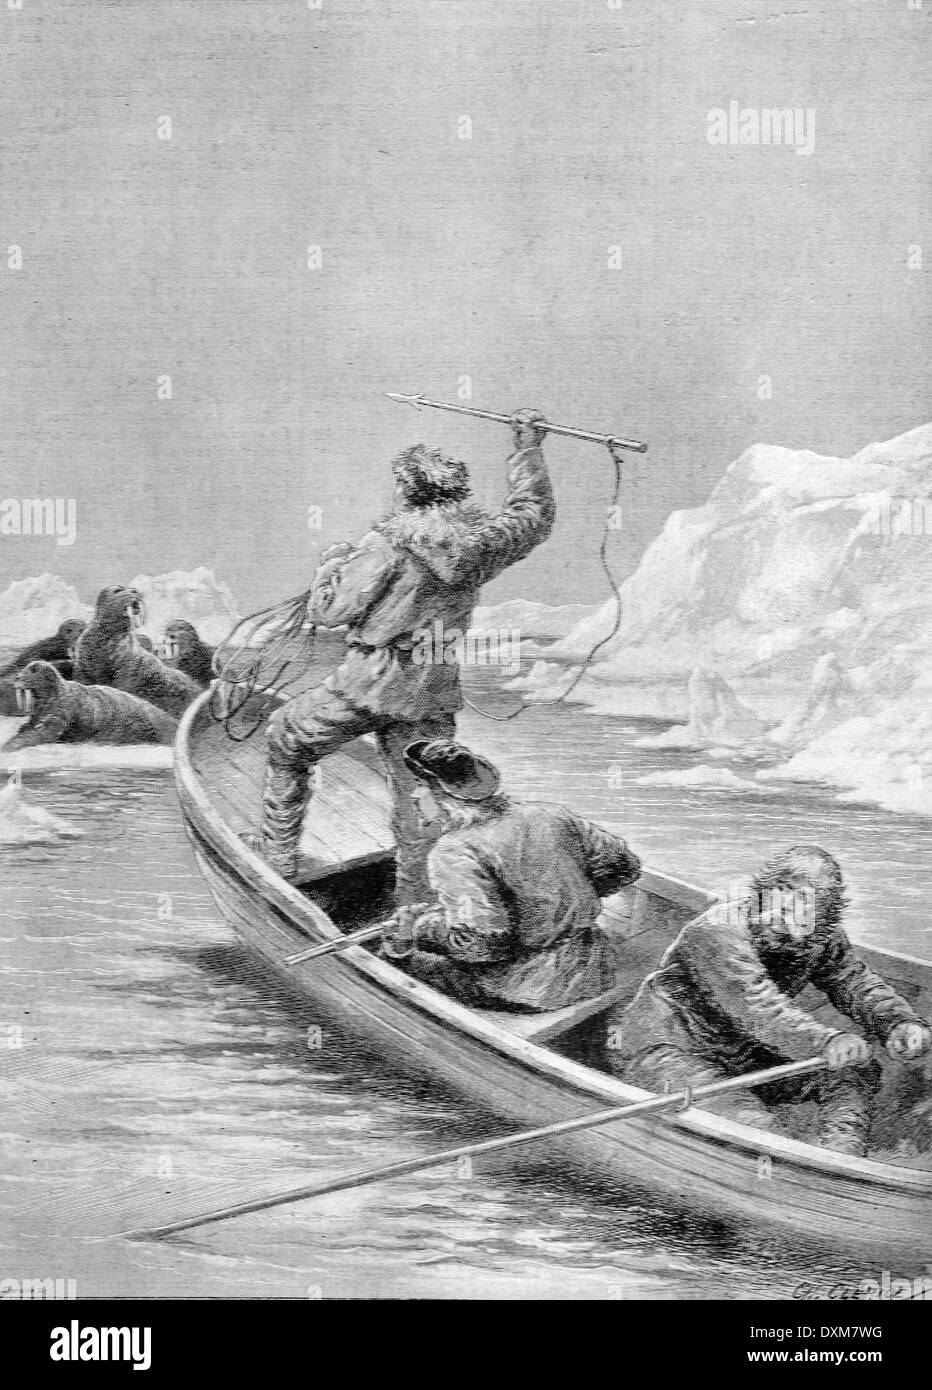 walrus hunt by norwegian explorer fridtjof nansen during his